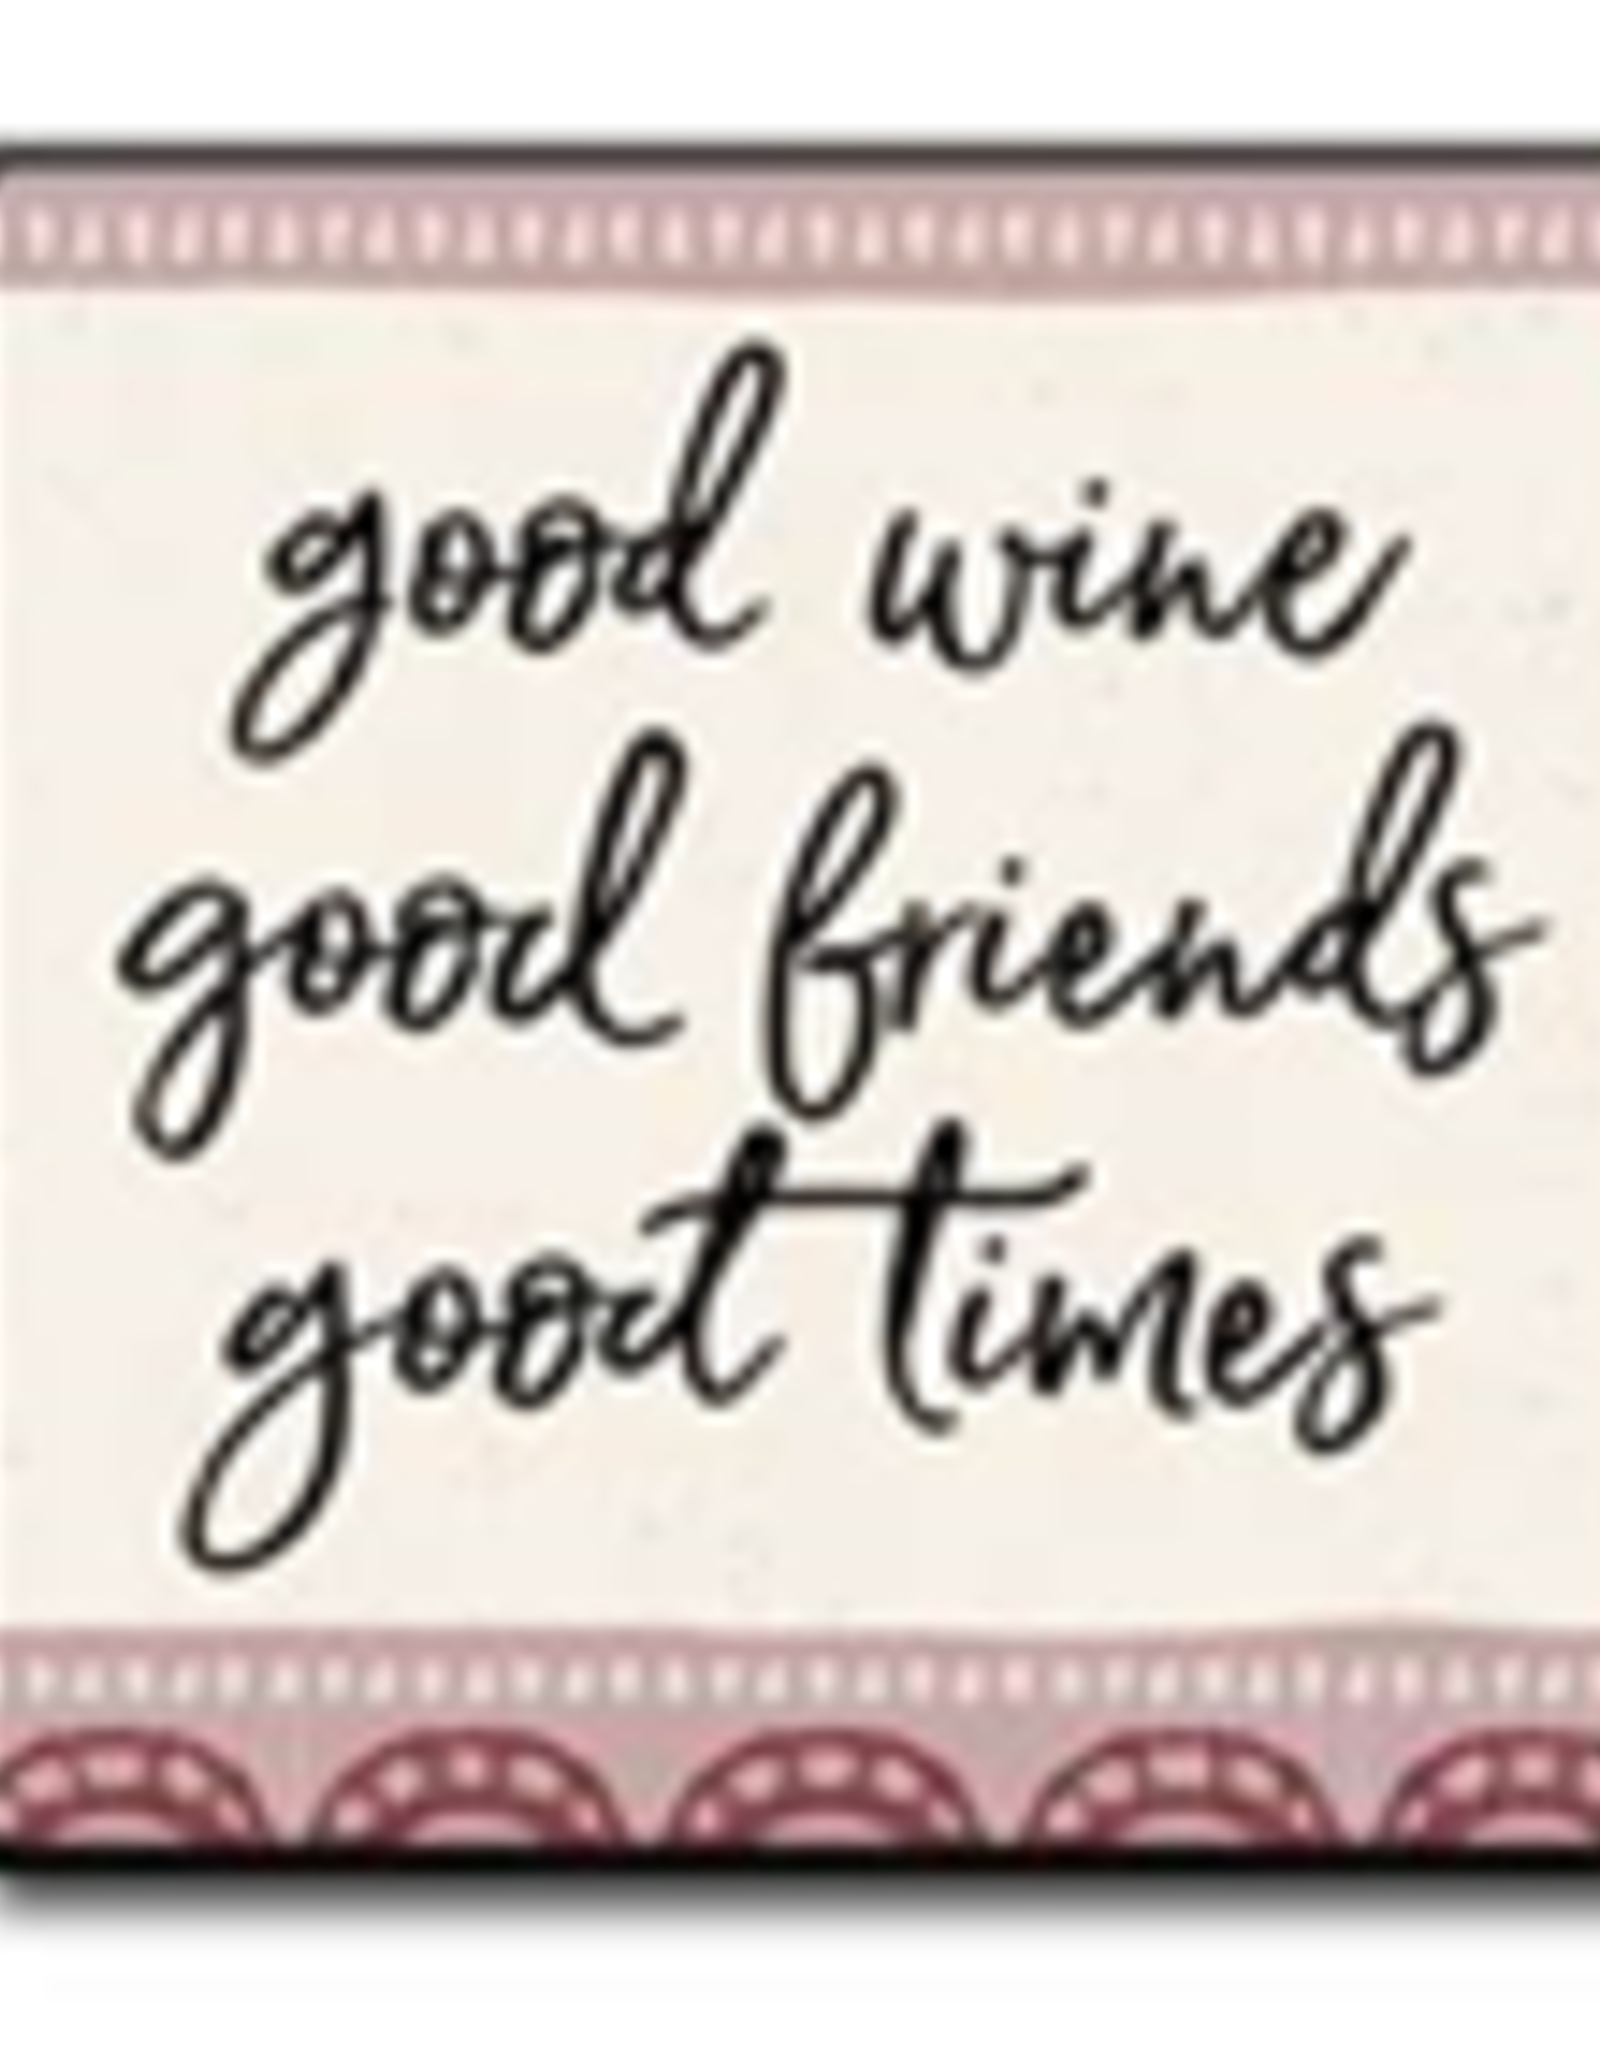 Good Wine Good Friends Good Times 4x4